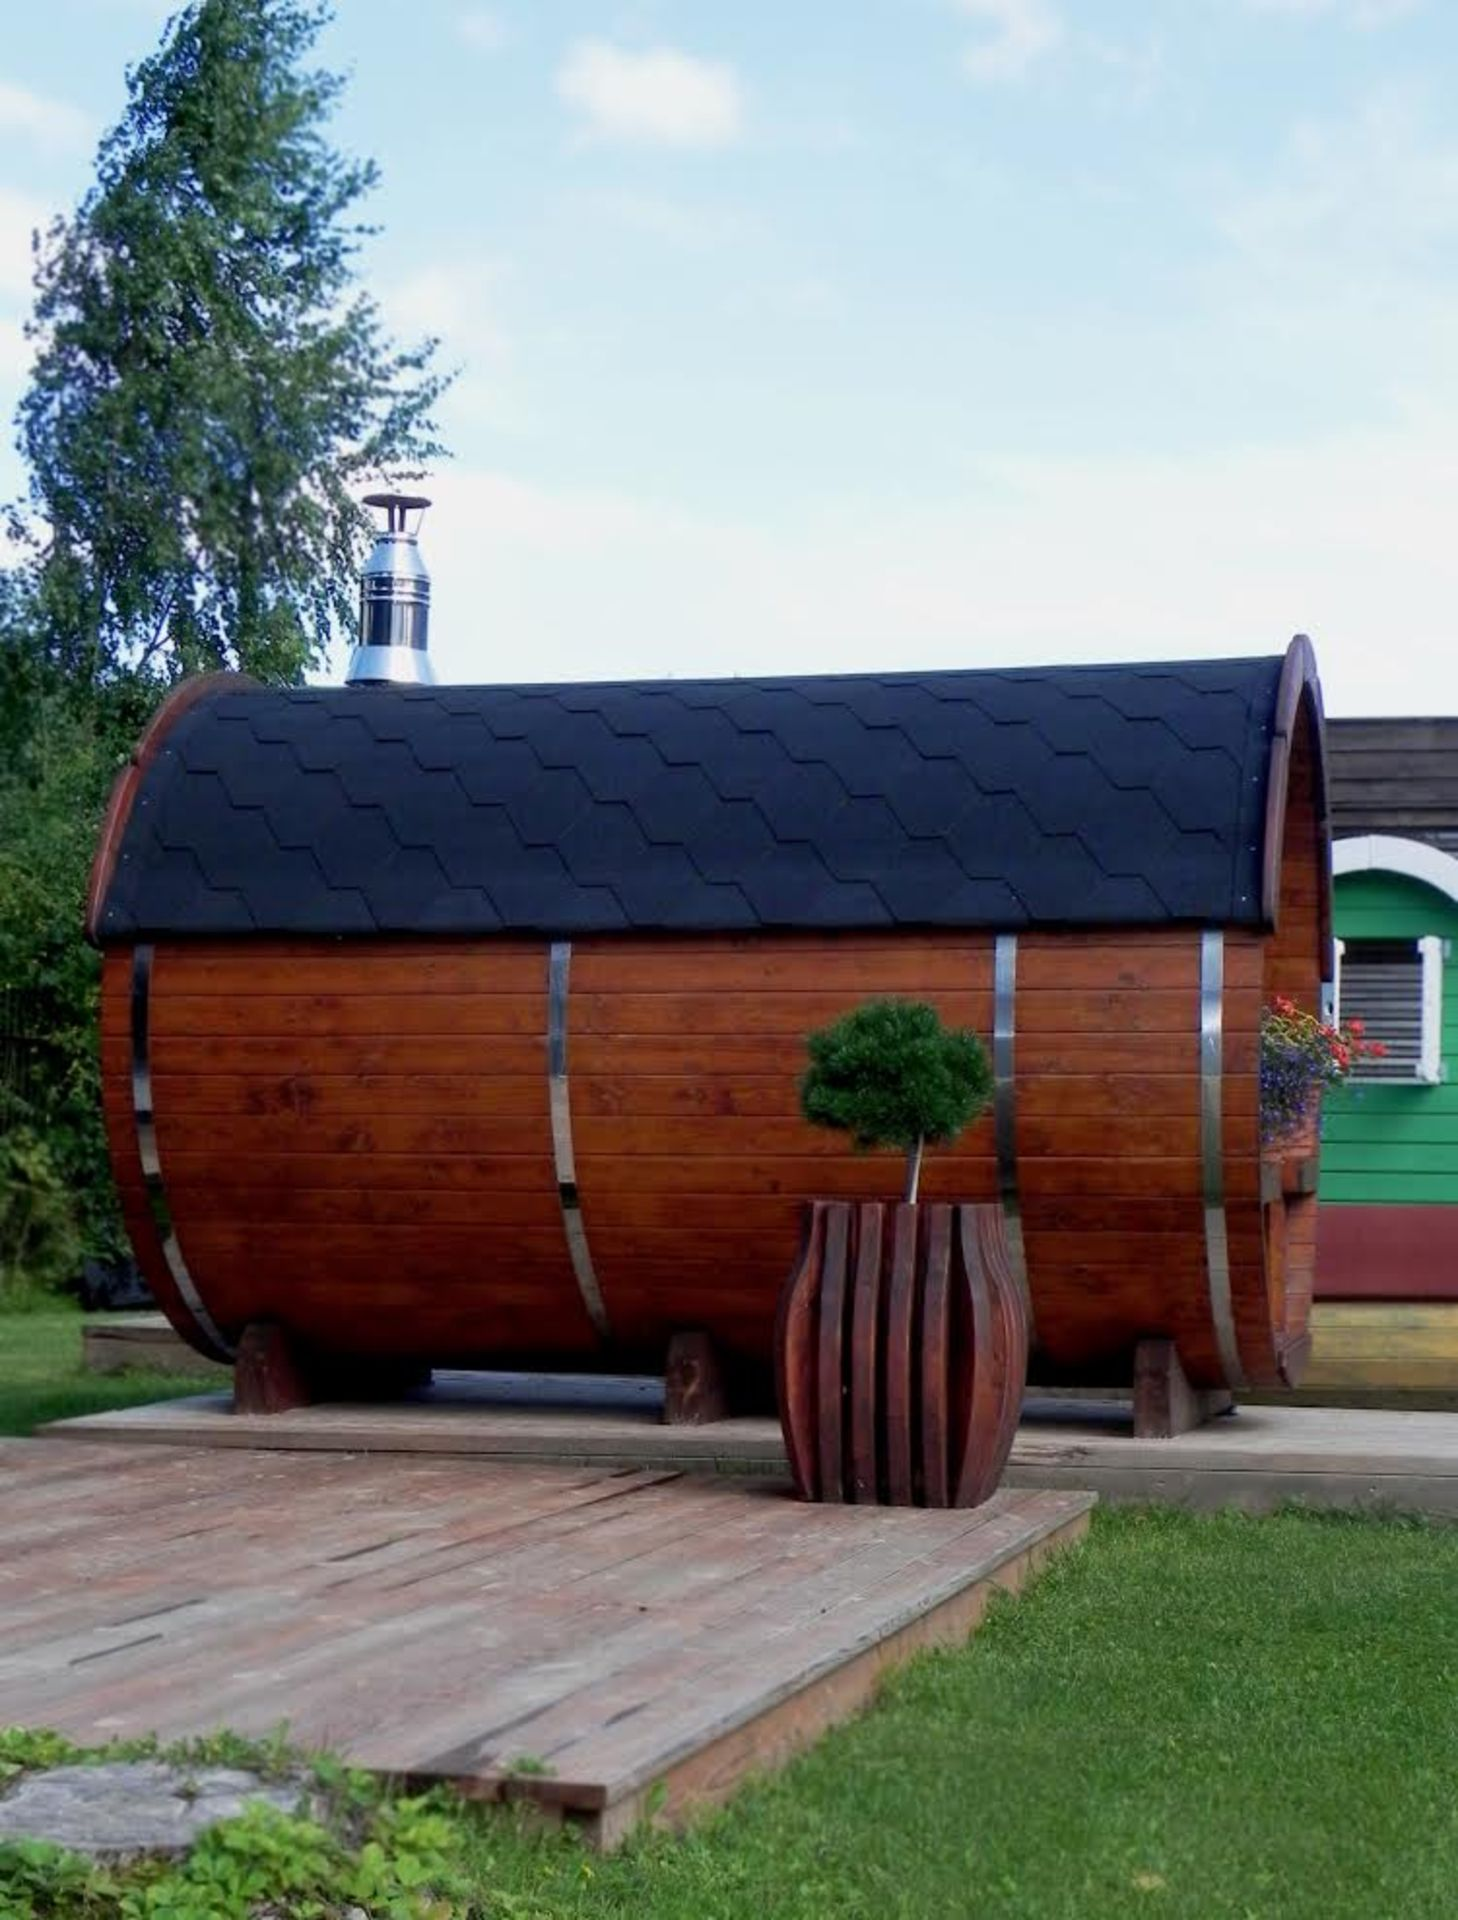 Lot 18011 - V Brand New Wonderful Spruce Sauna Barrel (2.5m length total) With Front Terrace & Powerful Electric